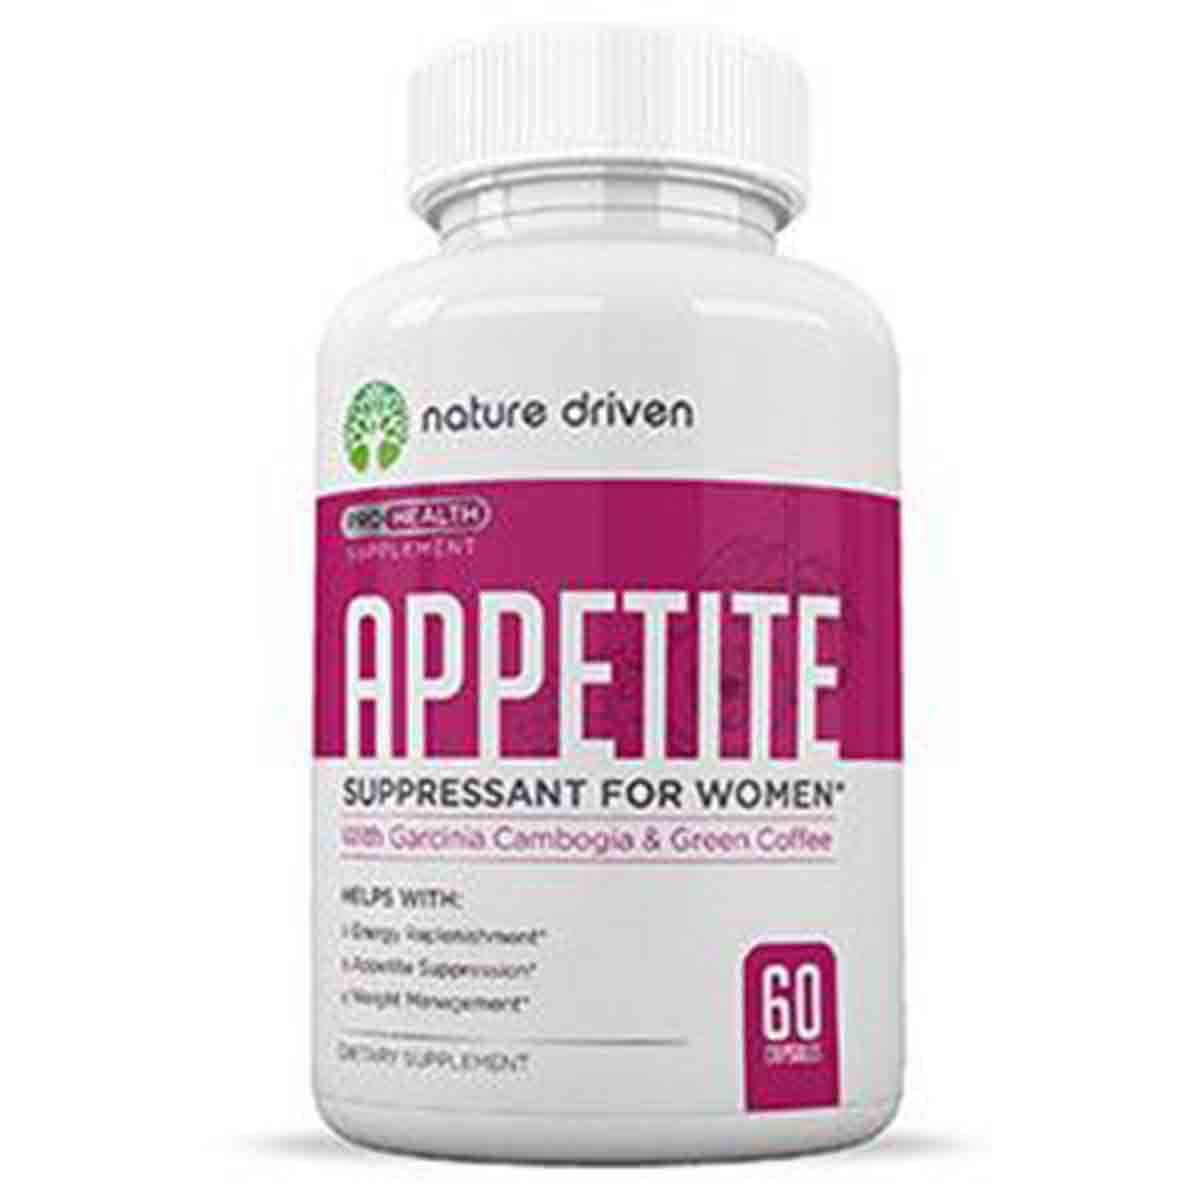 Nature Driven Appetite Suppressant